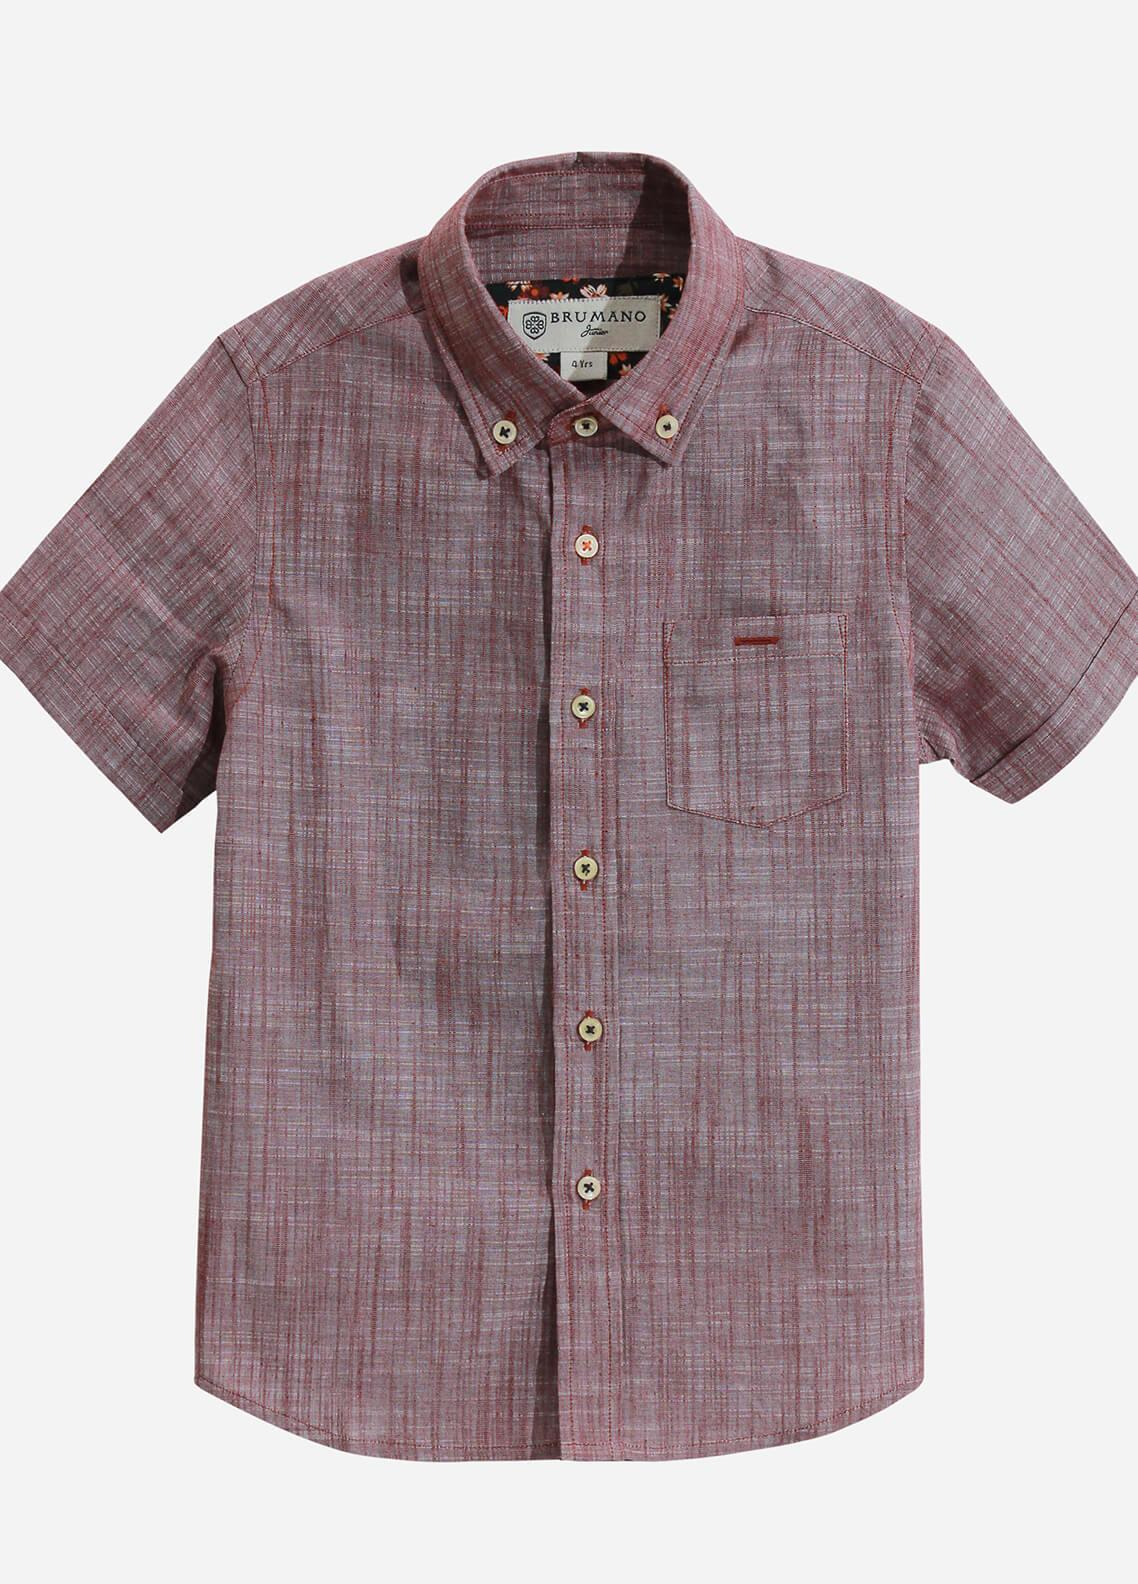 Brumano Cotton Casual Shirts for Boys - Burgundy BRM-664